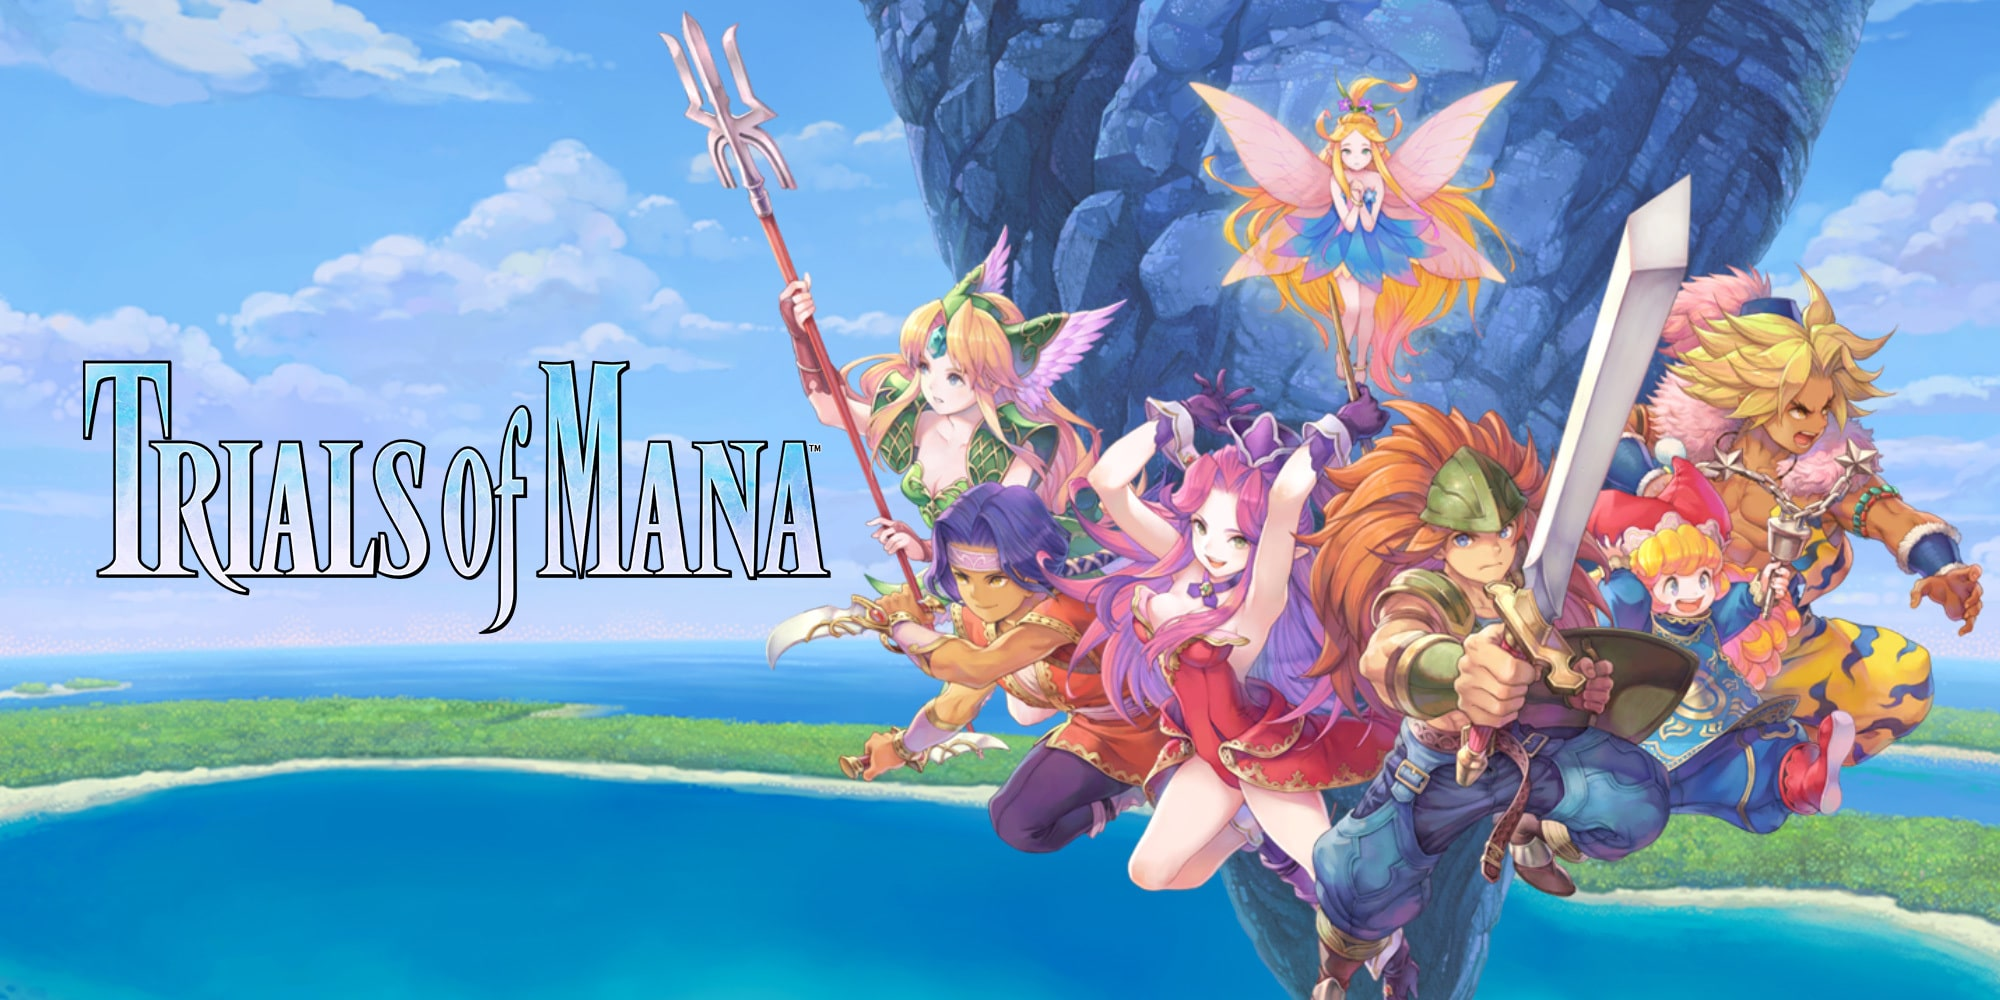 Descarga ya el demo de Trials of Mana